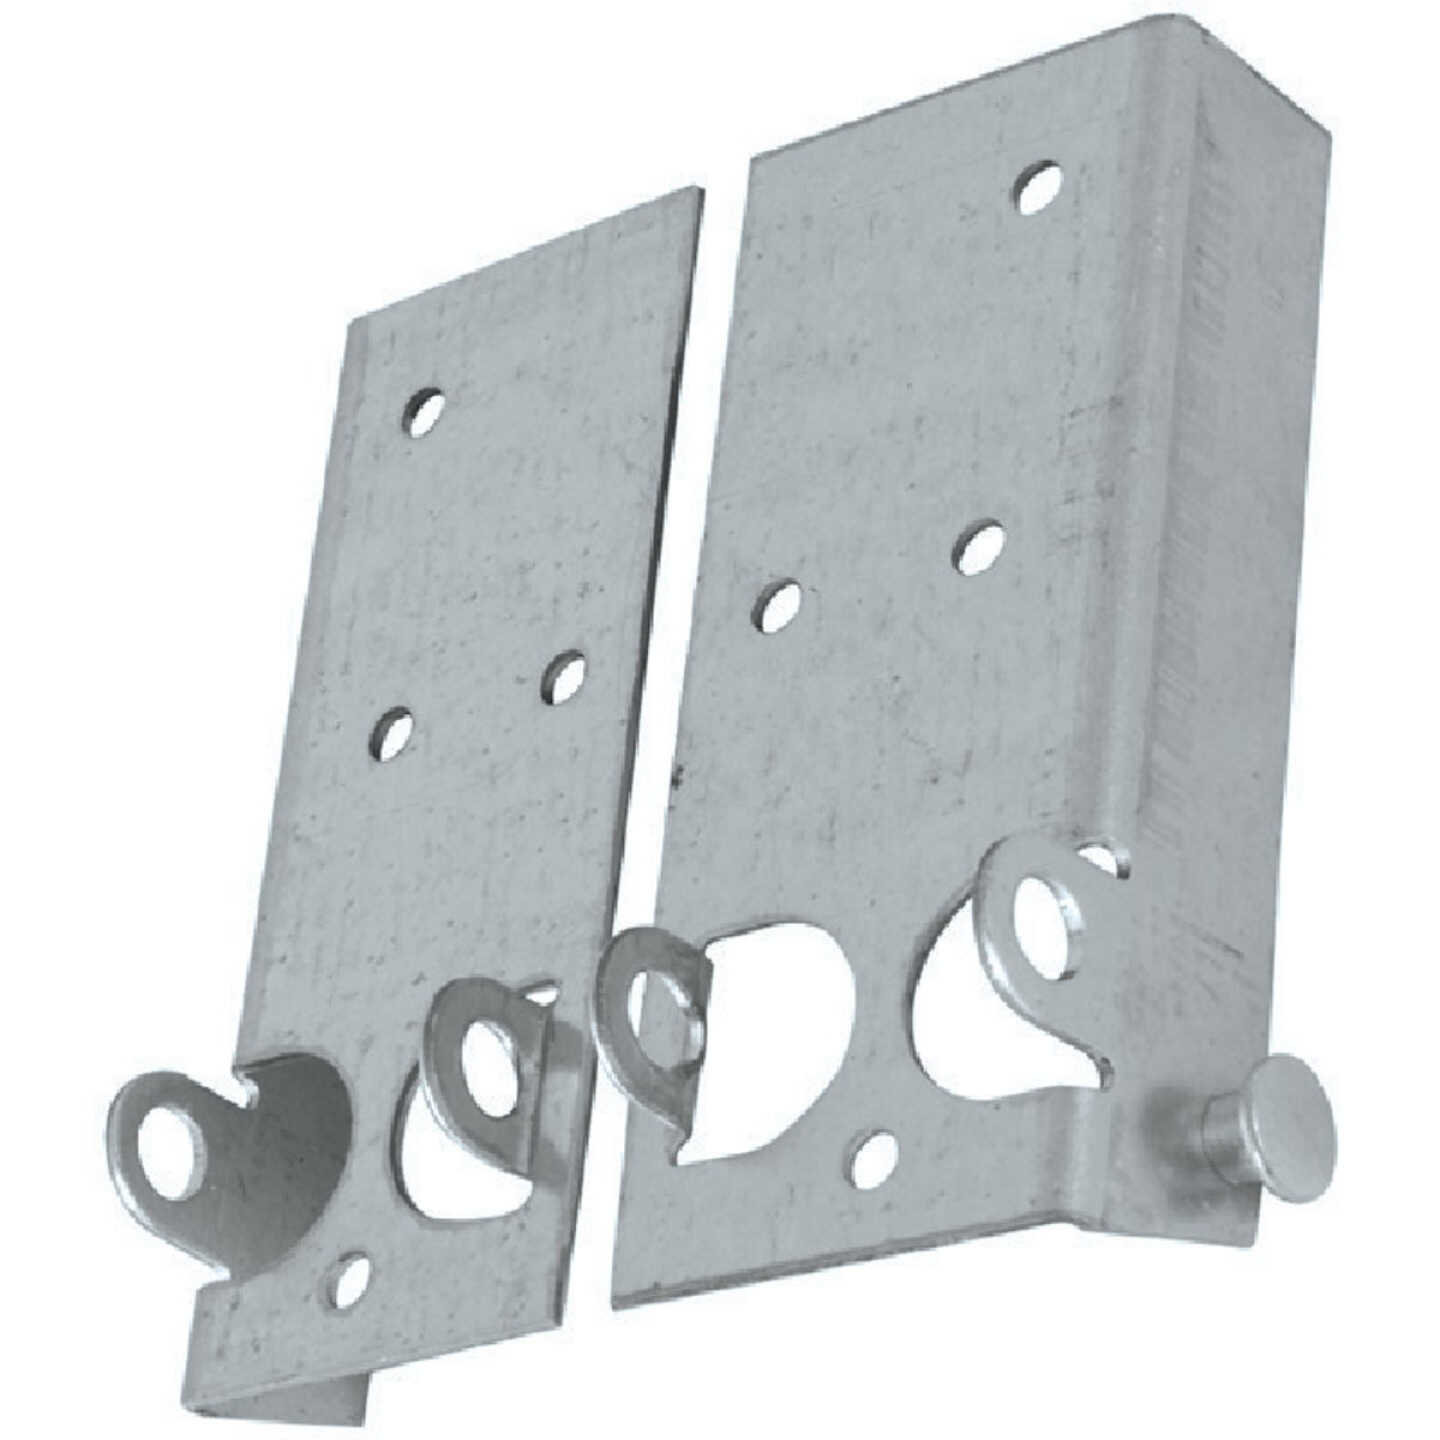 Prime-Line 7/16 In. Dia. Bottom Lifting Brackets -1 Left & 1 Right Image 2